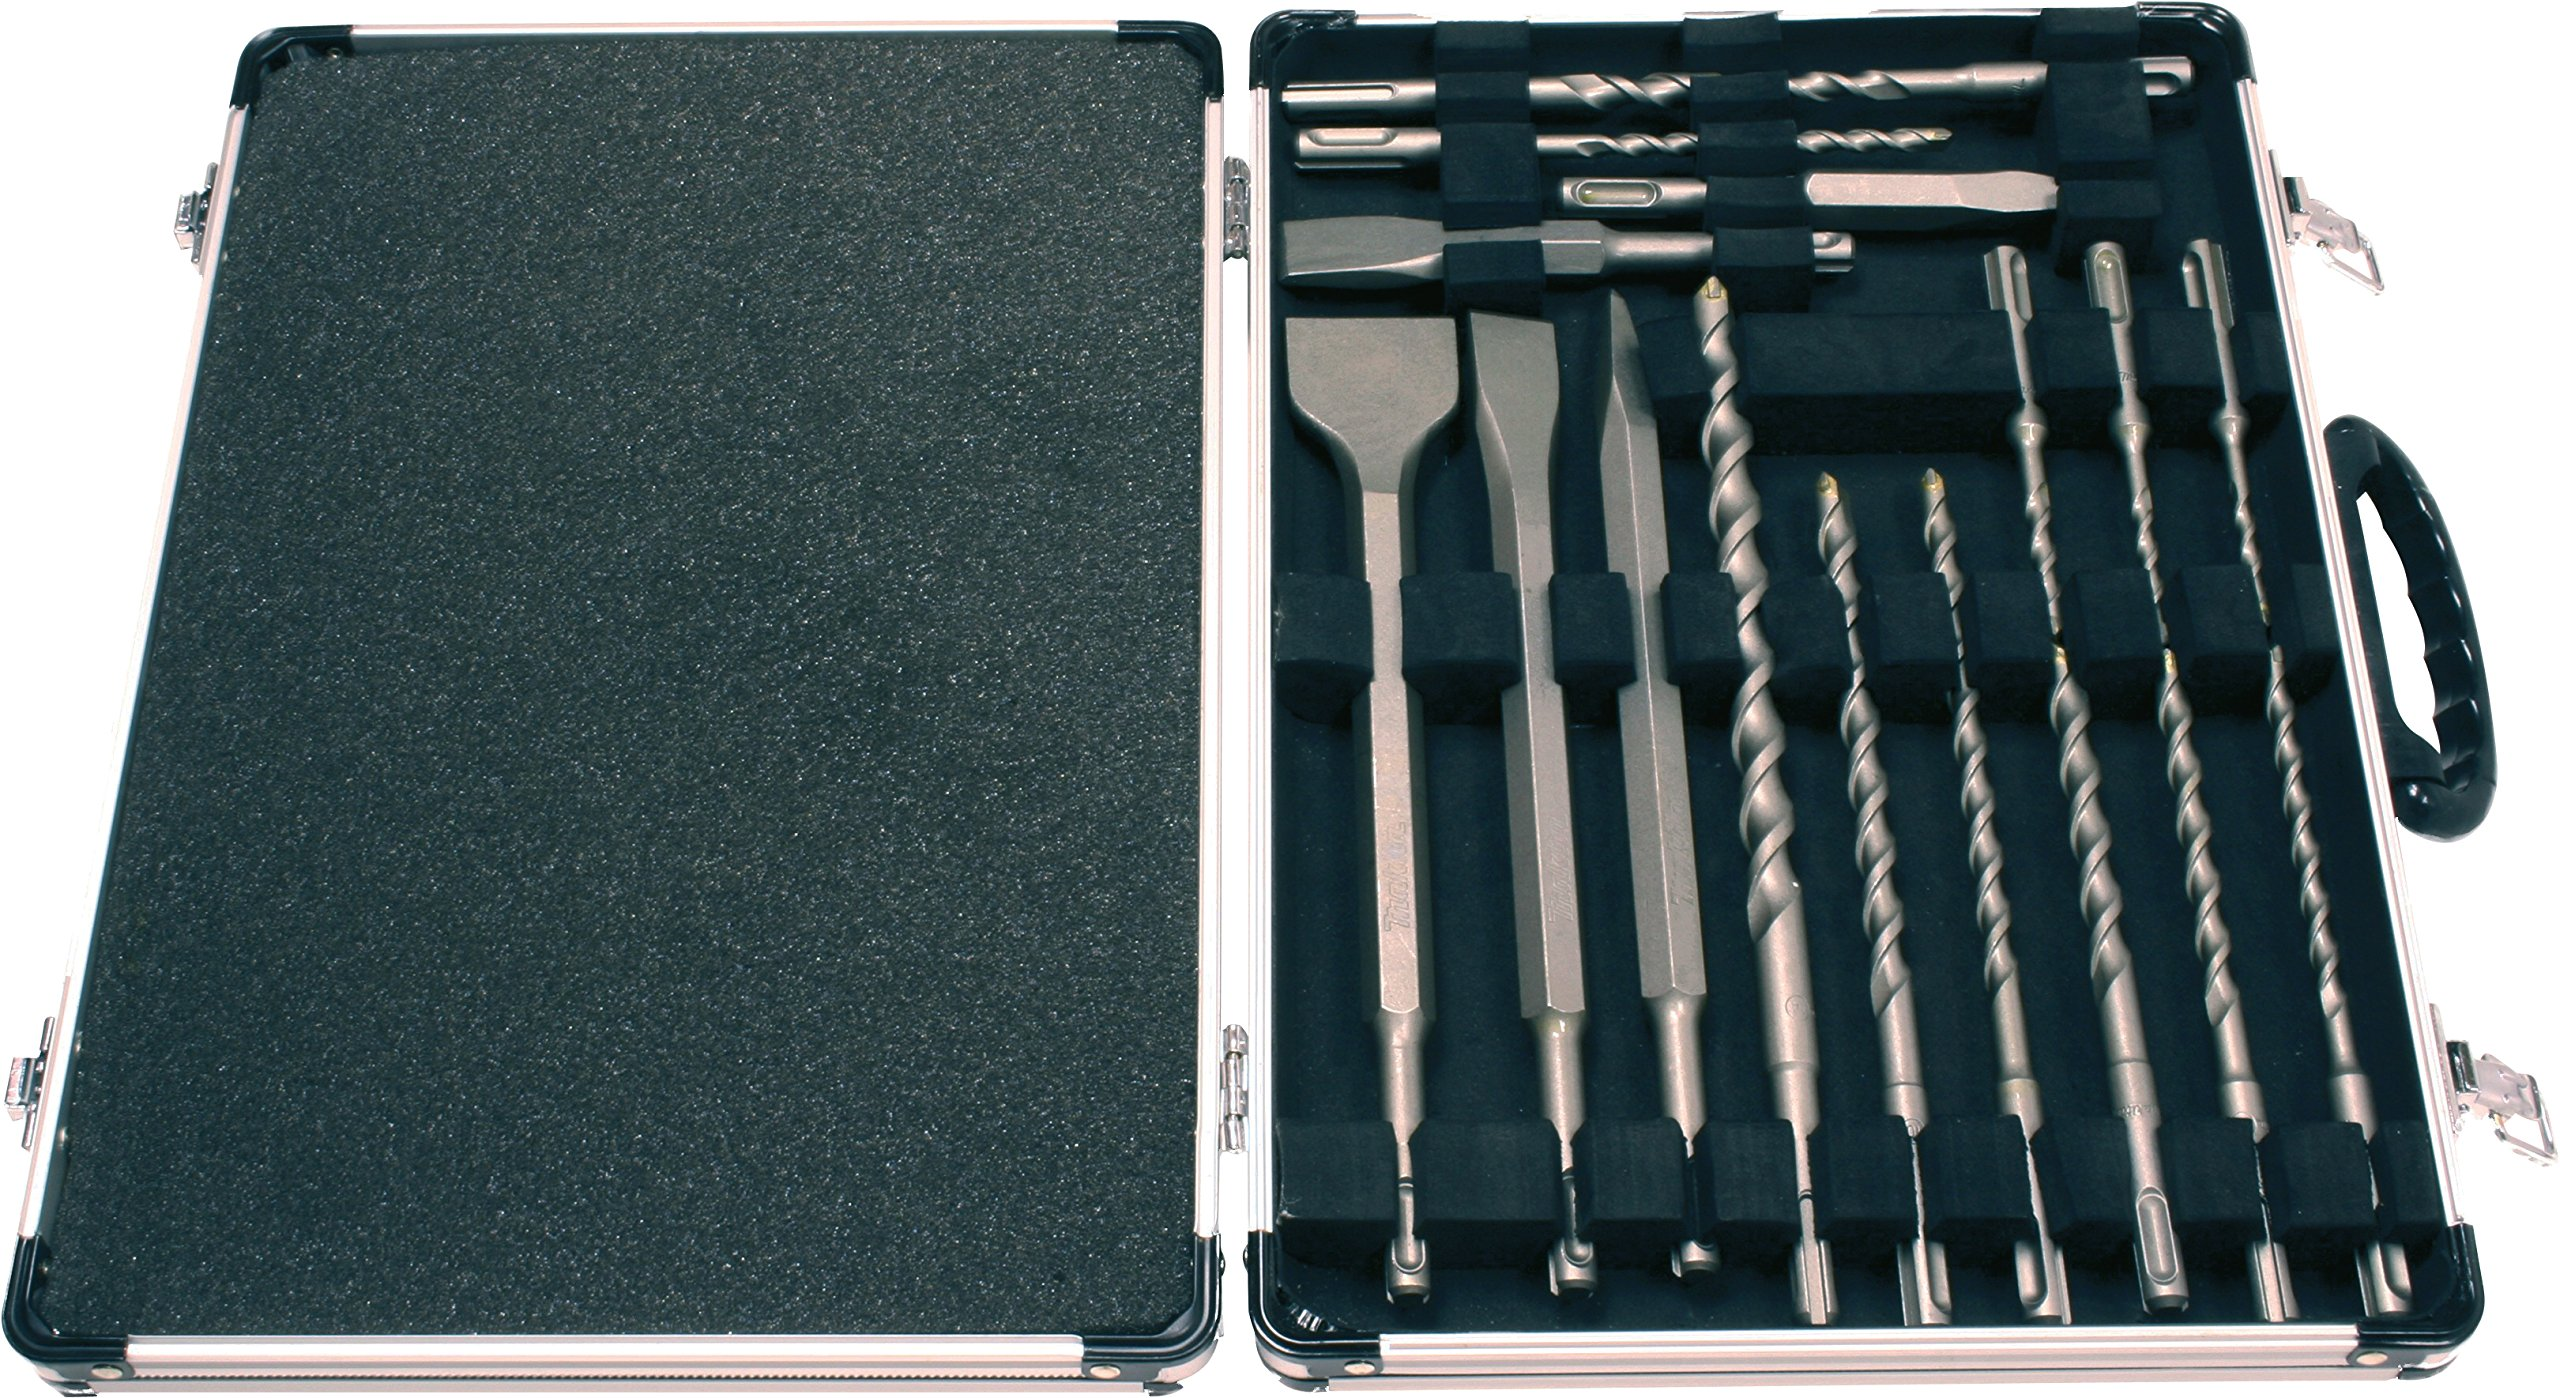 Makita Drill Set SDS Plus Bits Chisel Hammers 17 Pc in Aluminum Carry Case D-21200